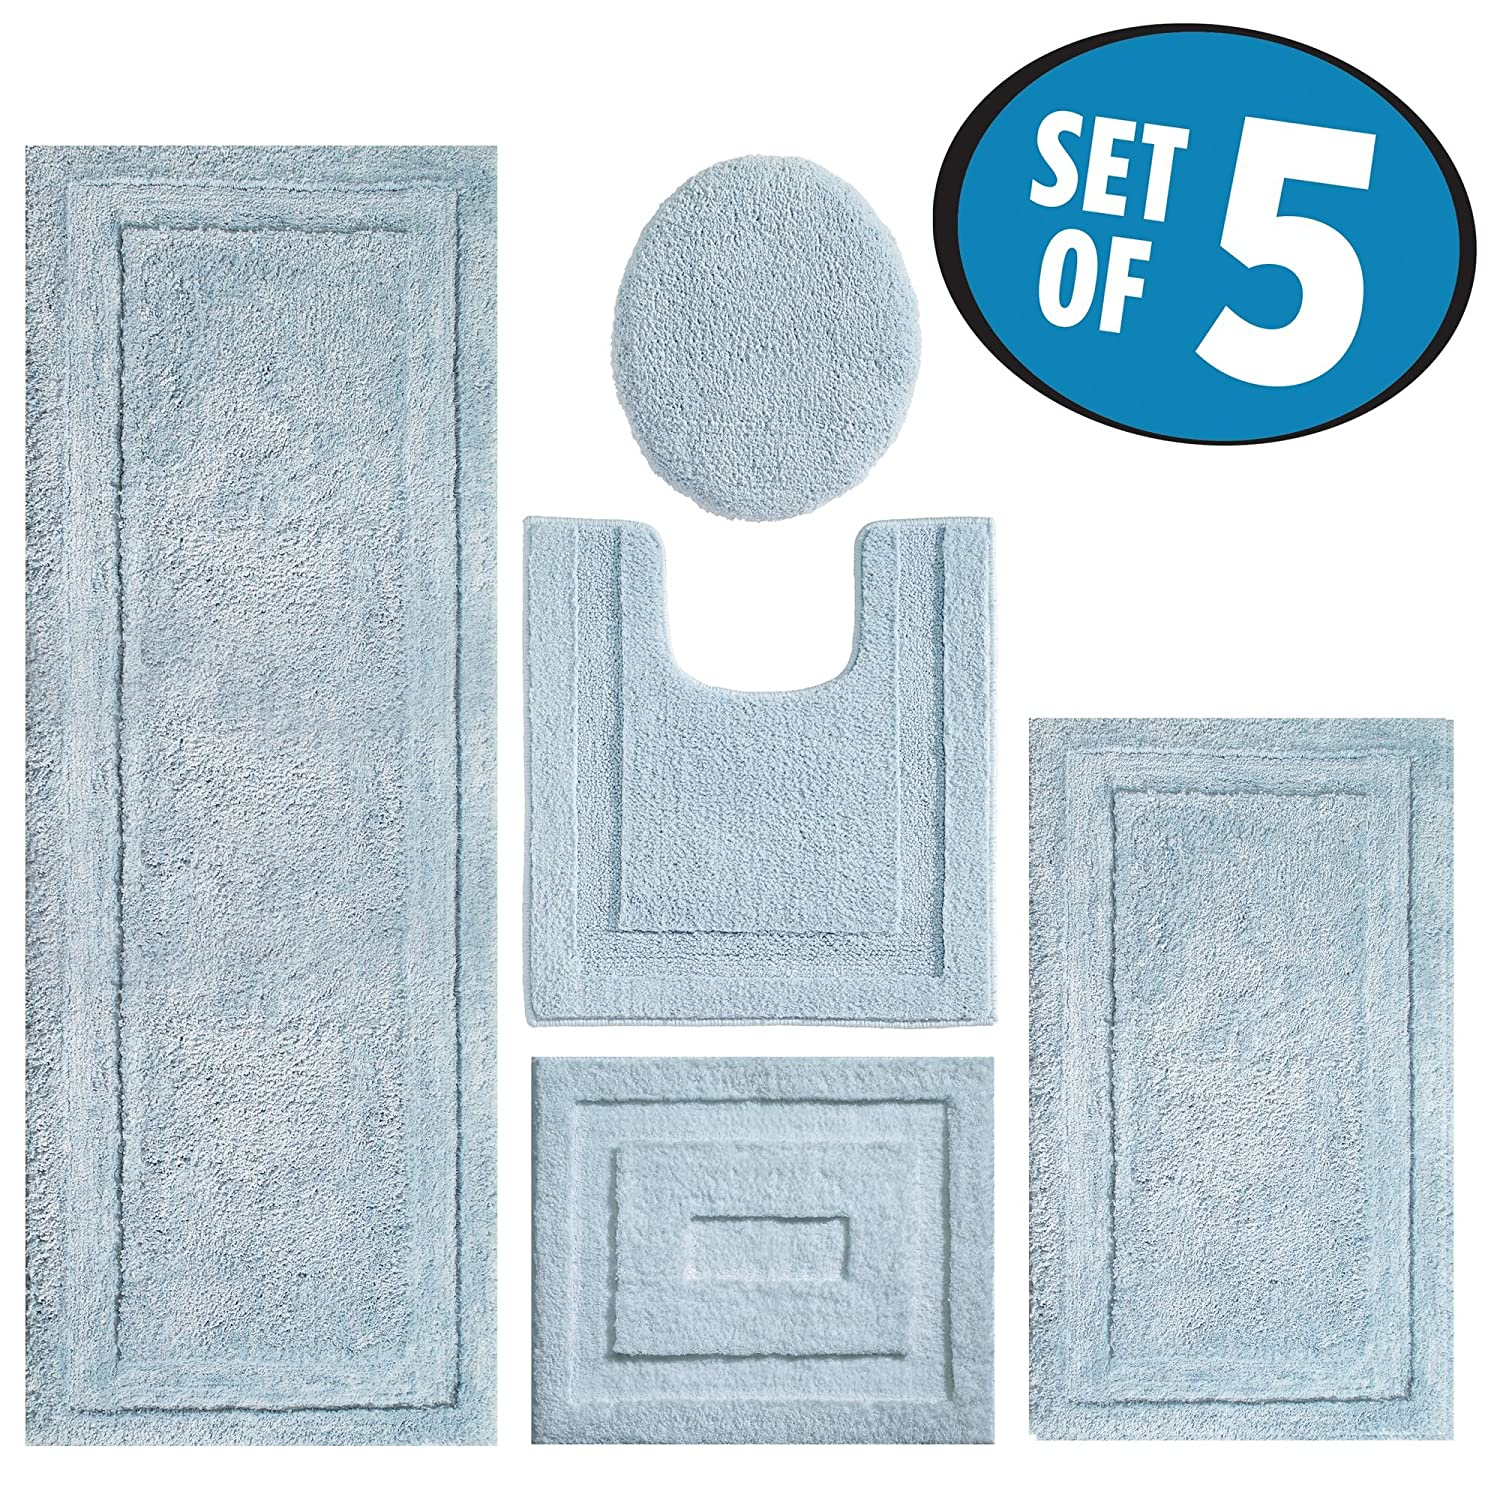 mDesign Contour, Toilet Seat Cover, and Bathroom Mat Combo Pack - Set of 5, Water MetroDecor